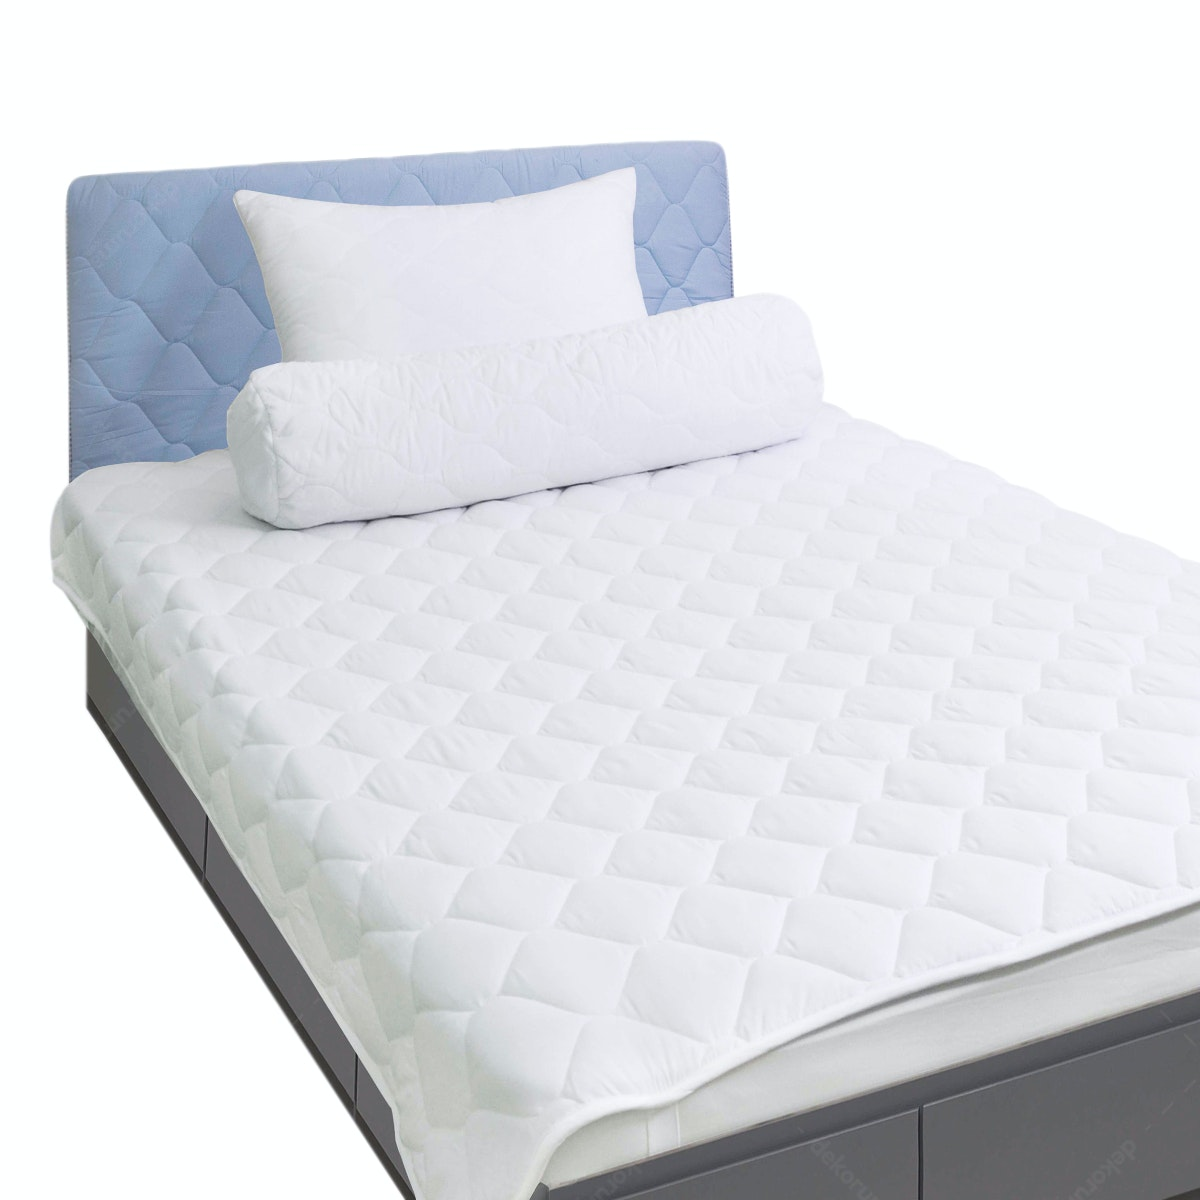 Pillow People Paket Protector 3 in 1 - Matras Protector 200 + Pillow Protector + Bolster Protector